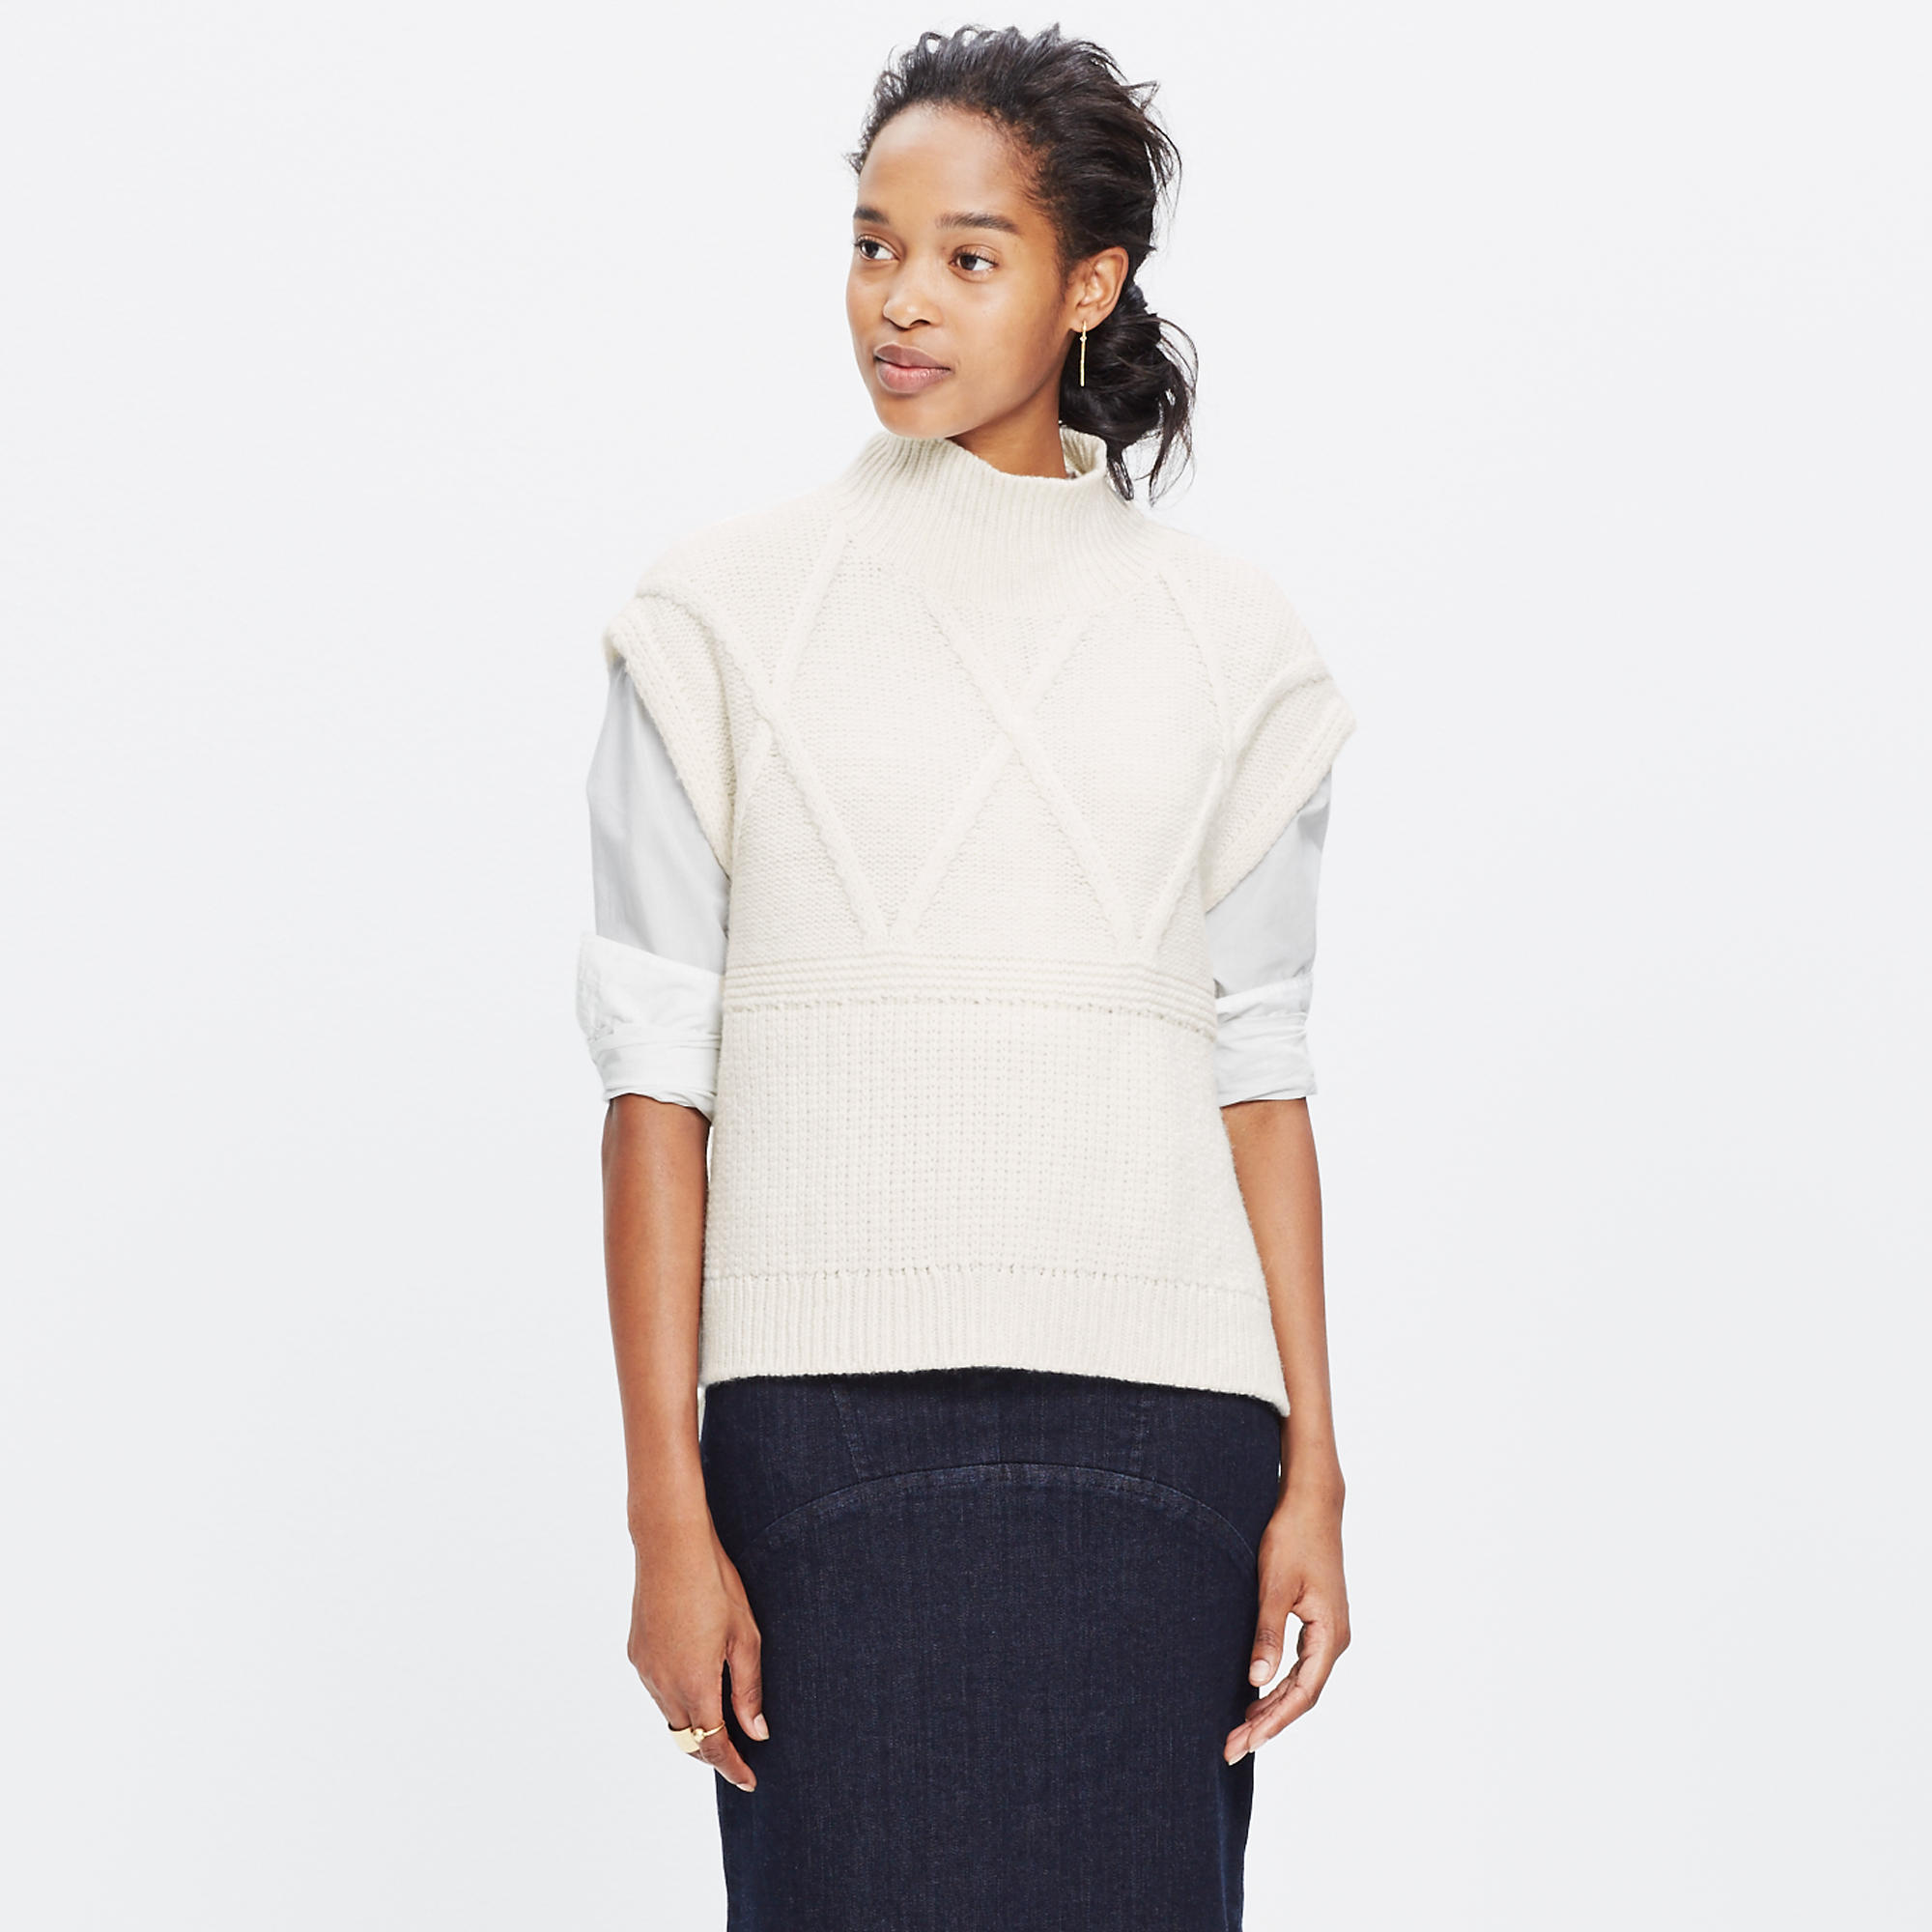 Cableknit Side-Tie Sweater-Vest : turtlenecks | Madewell